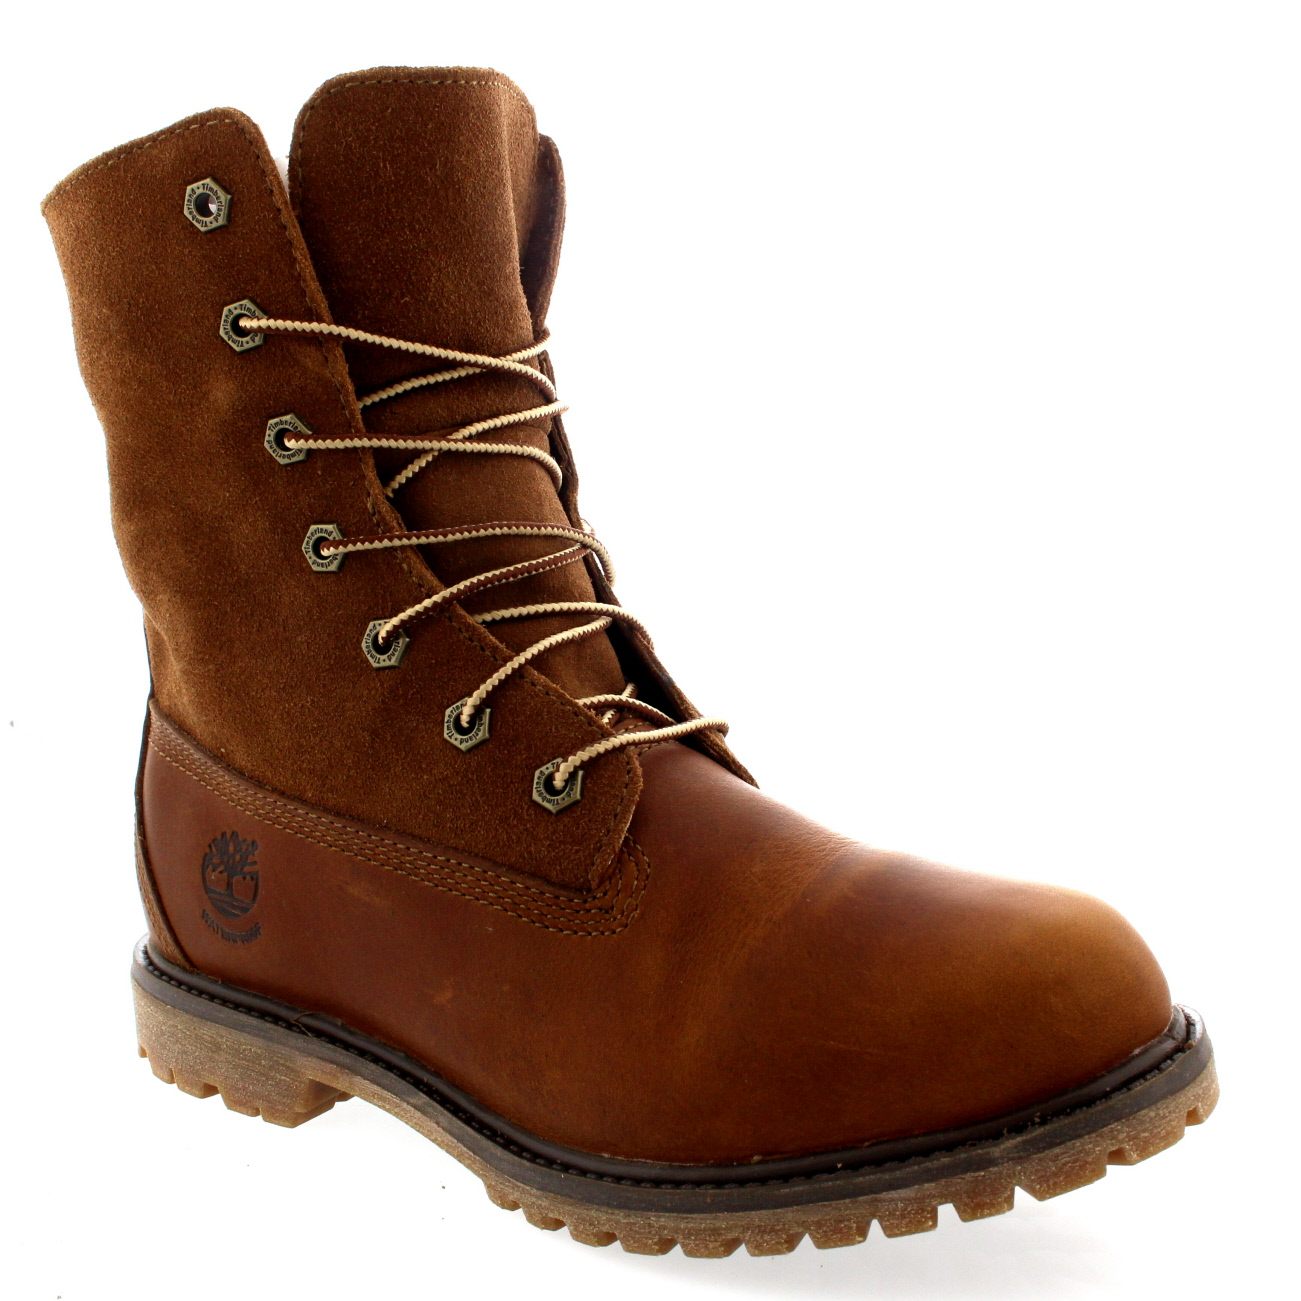 official photos 940eb 7dbcd Womens Timberland Authentic Teddy Fleece Lace Up Snow Leather Winter Boot  UK 3-9